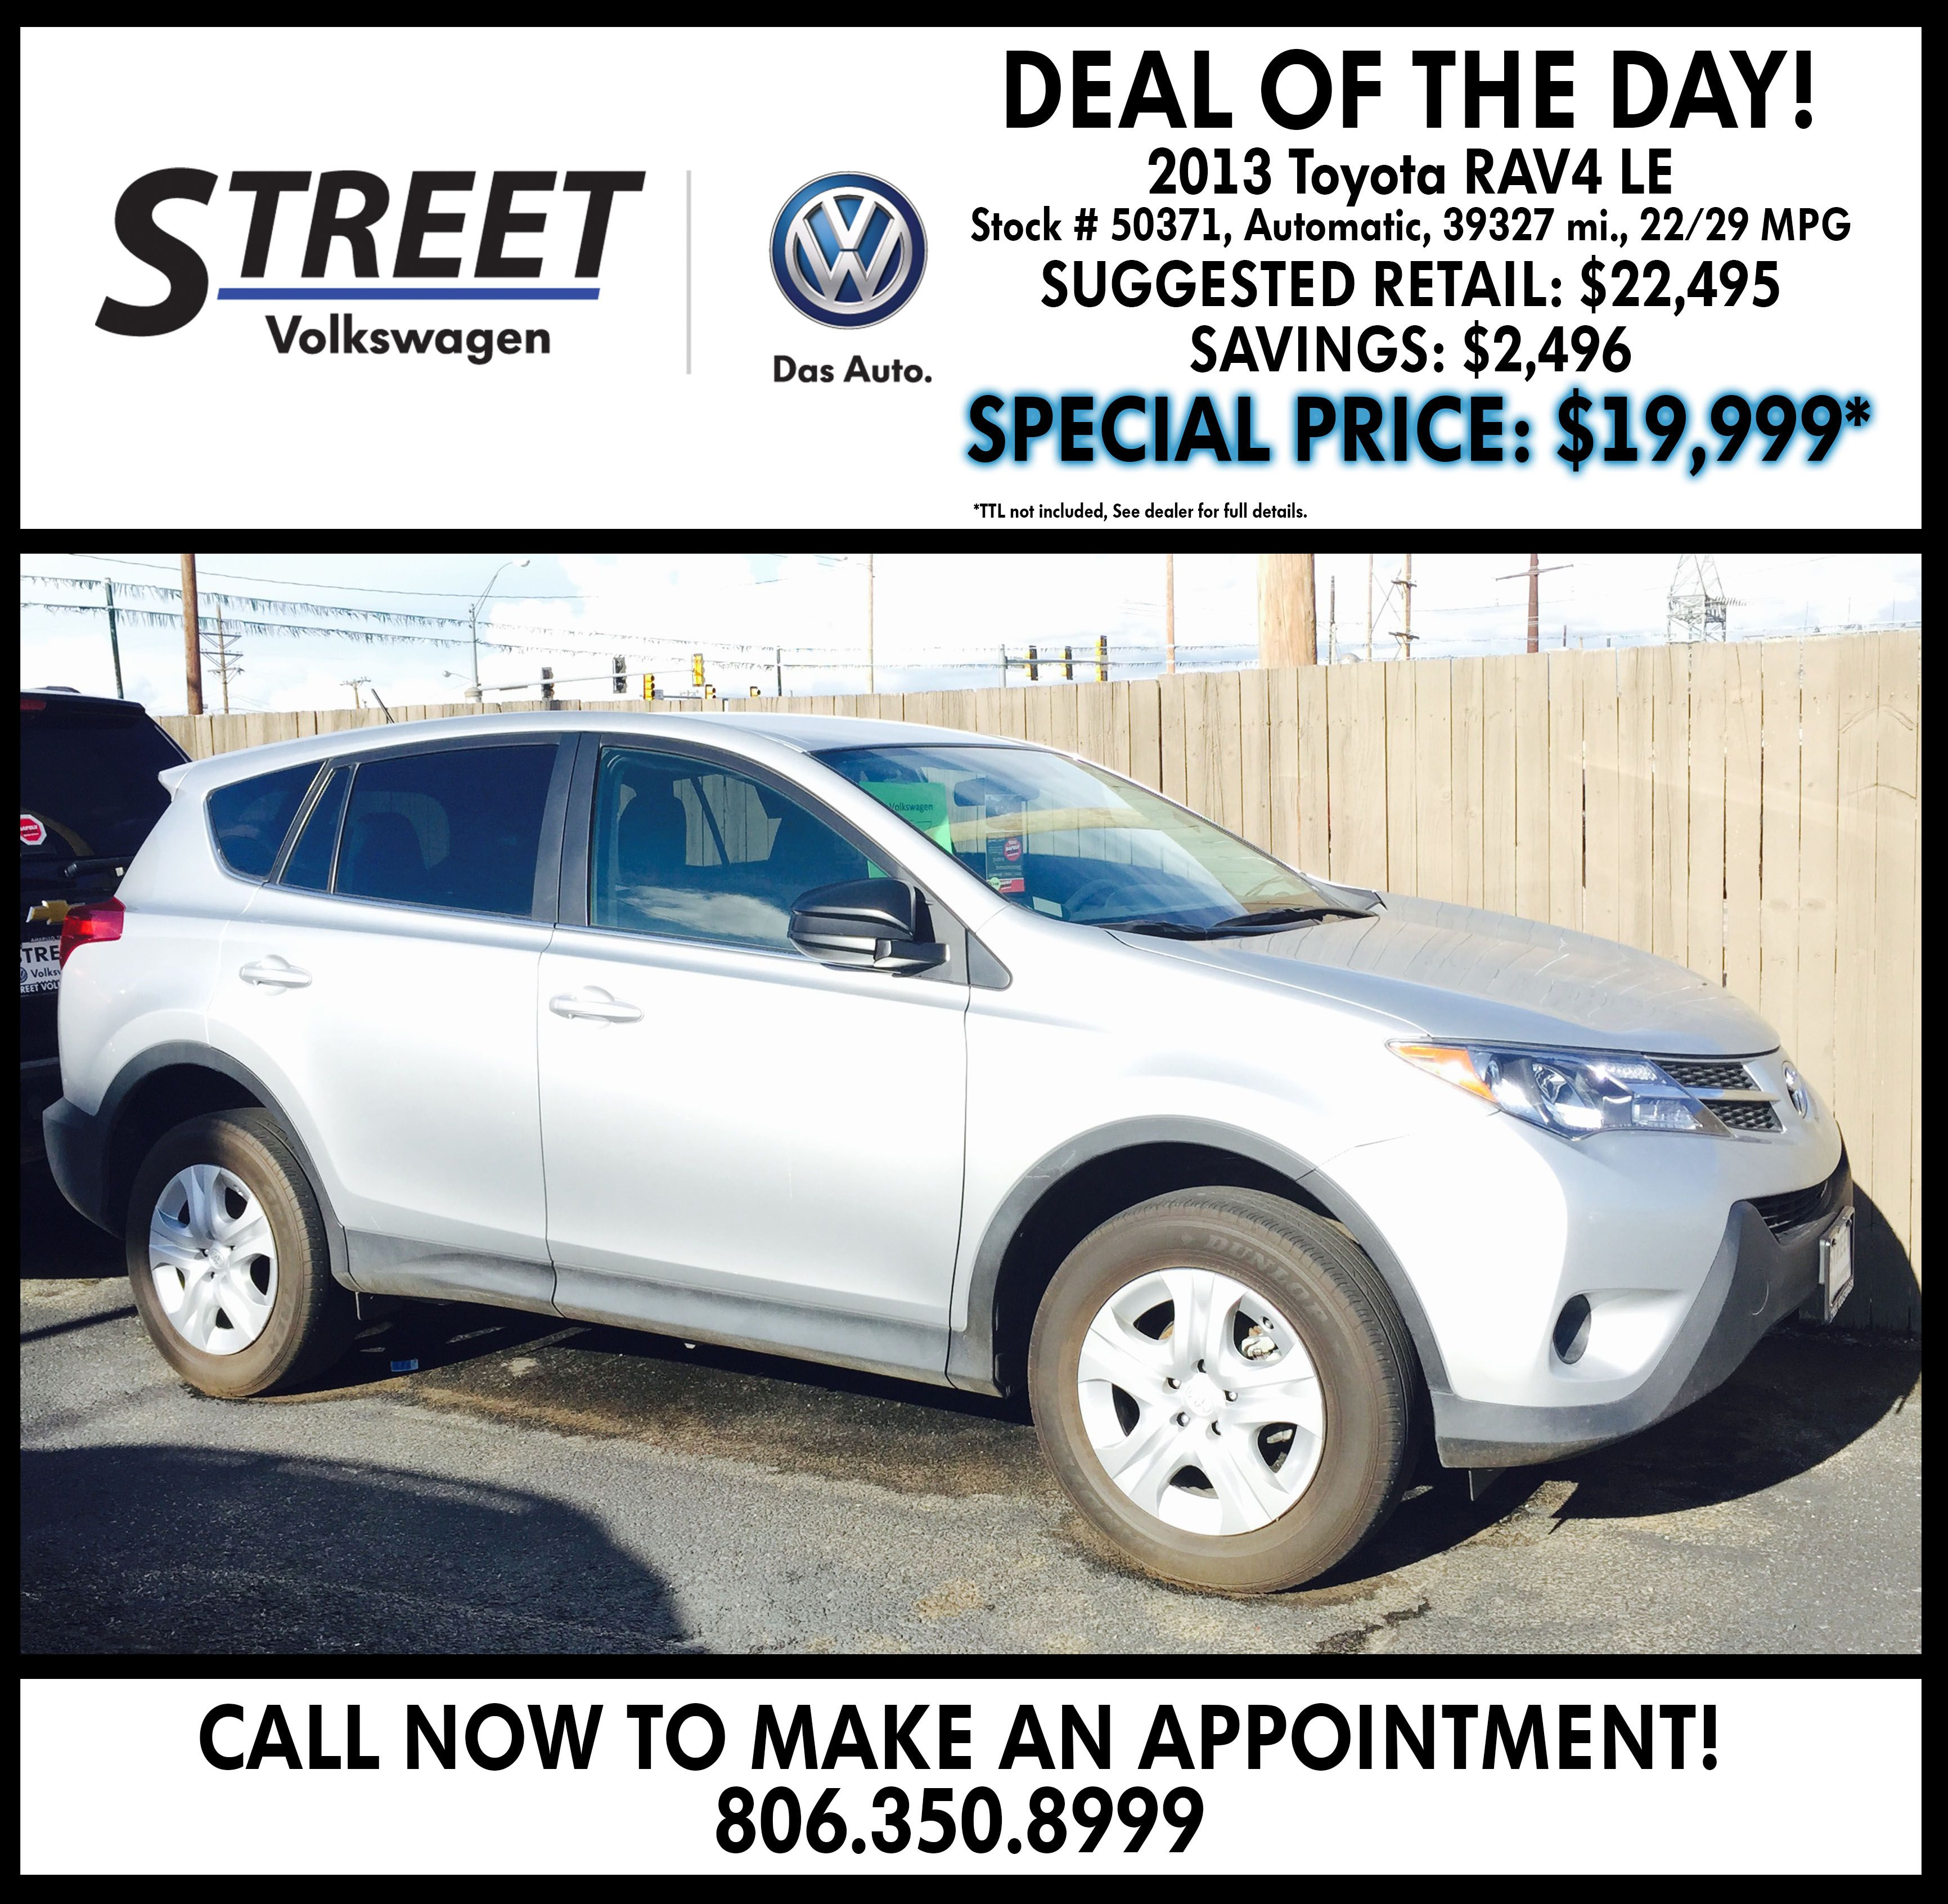 Volkswagen Dealership Amarillo Tx Used Cars Street Volkswagen Of Amarillo Volkswagen Used Cars Toyota Rav4